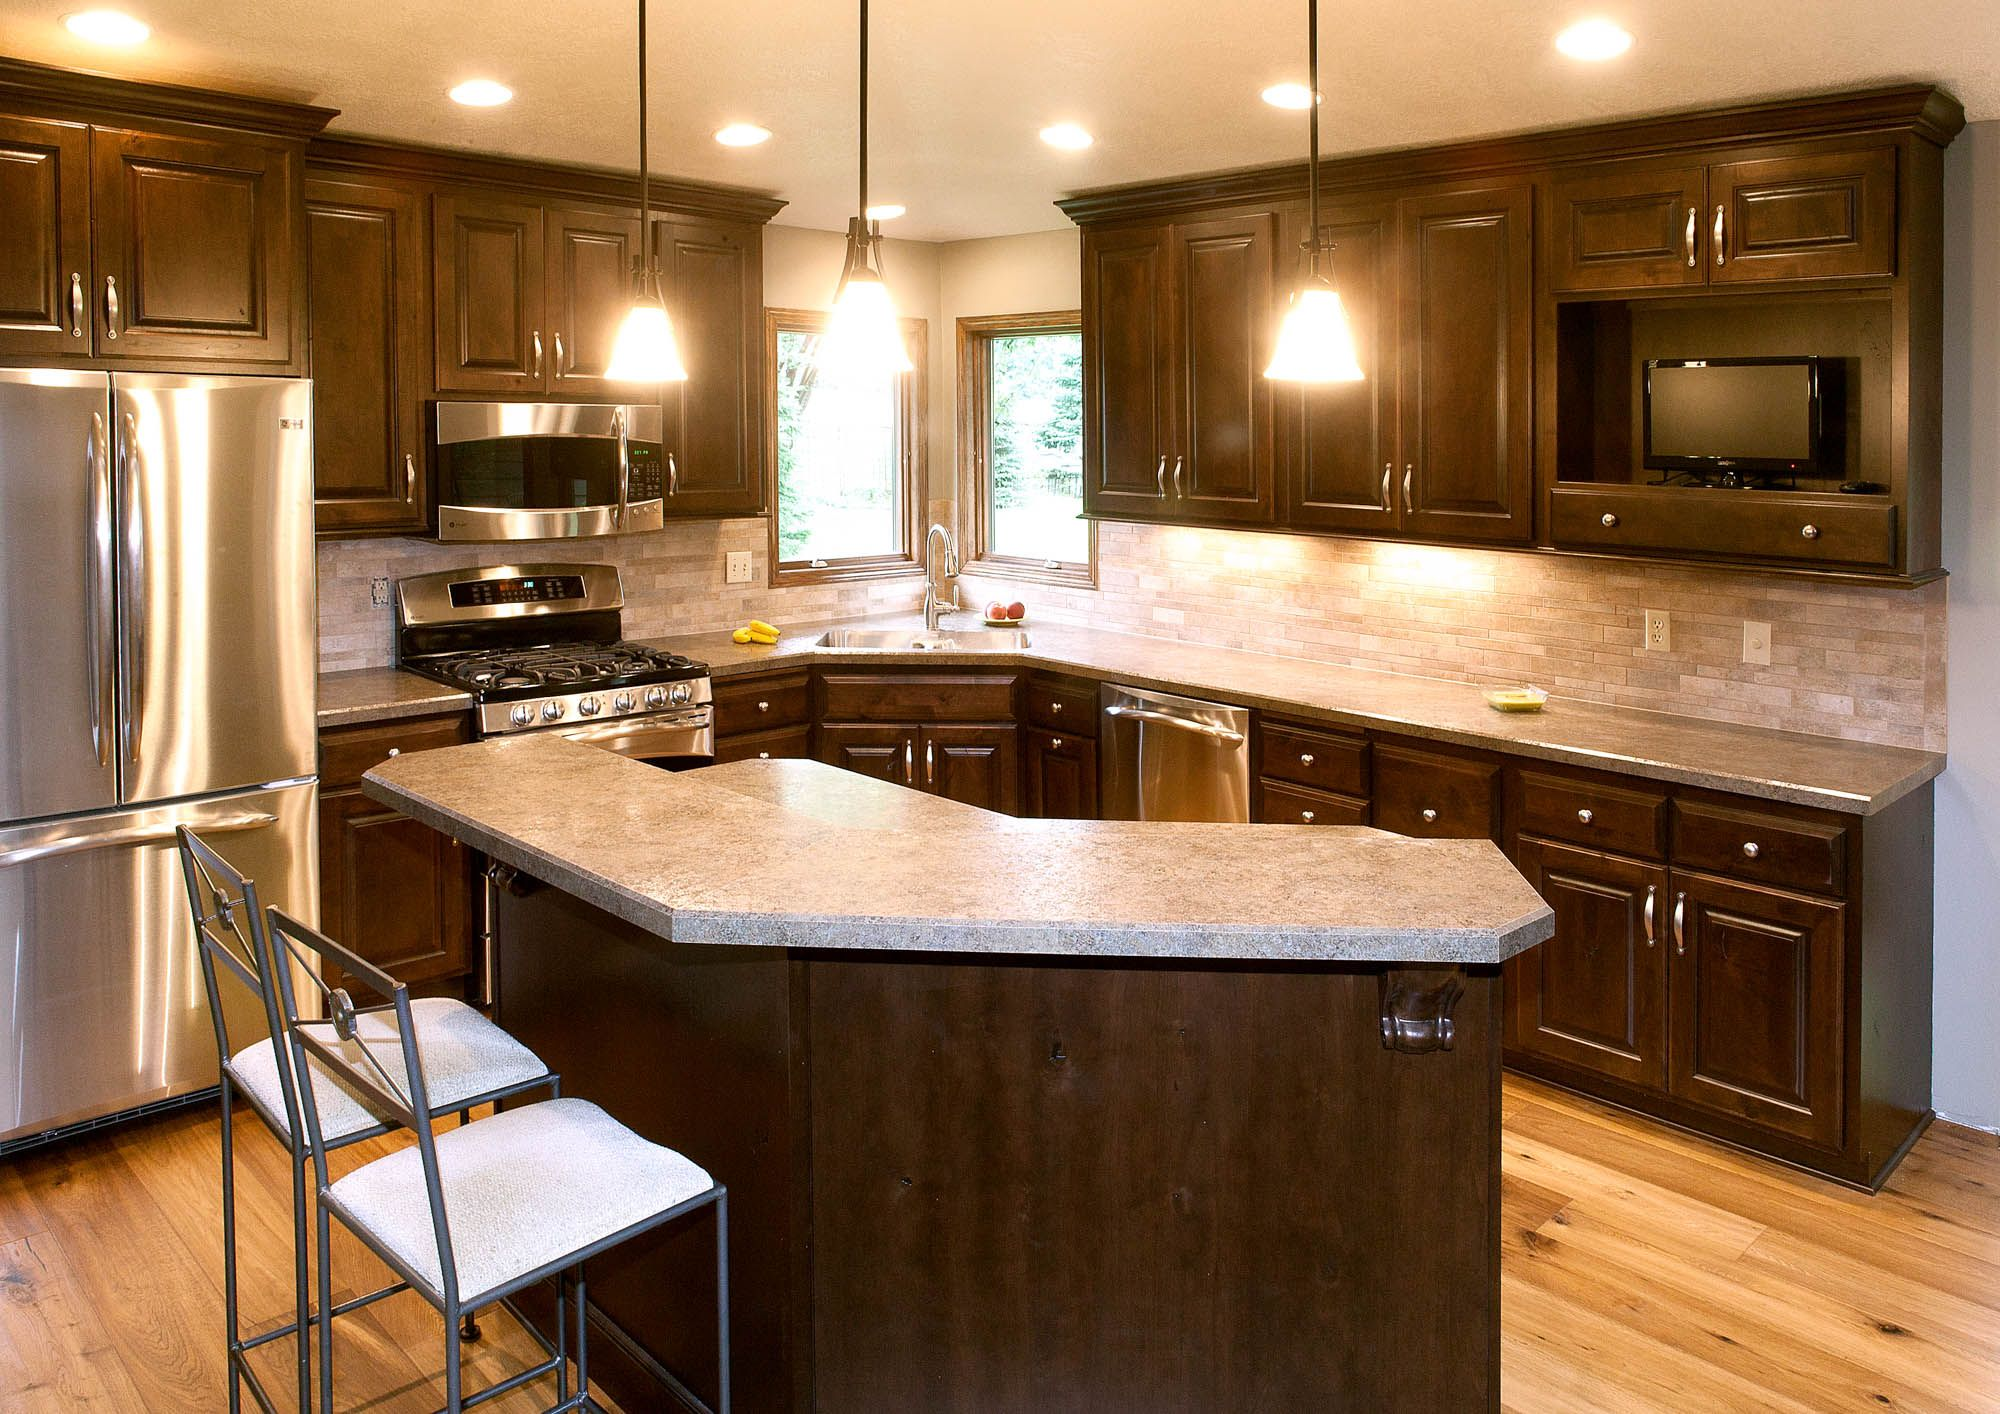 Renew Stained Kitchen Cabinets In Coffee With Ebony Glaze By Showplace Cabinetry View 3 Kitchen Remodel Kitchen Renovation Home Kitchens